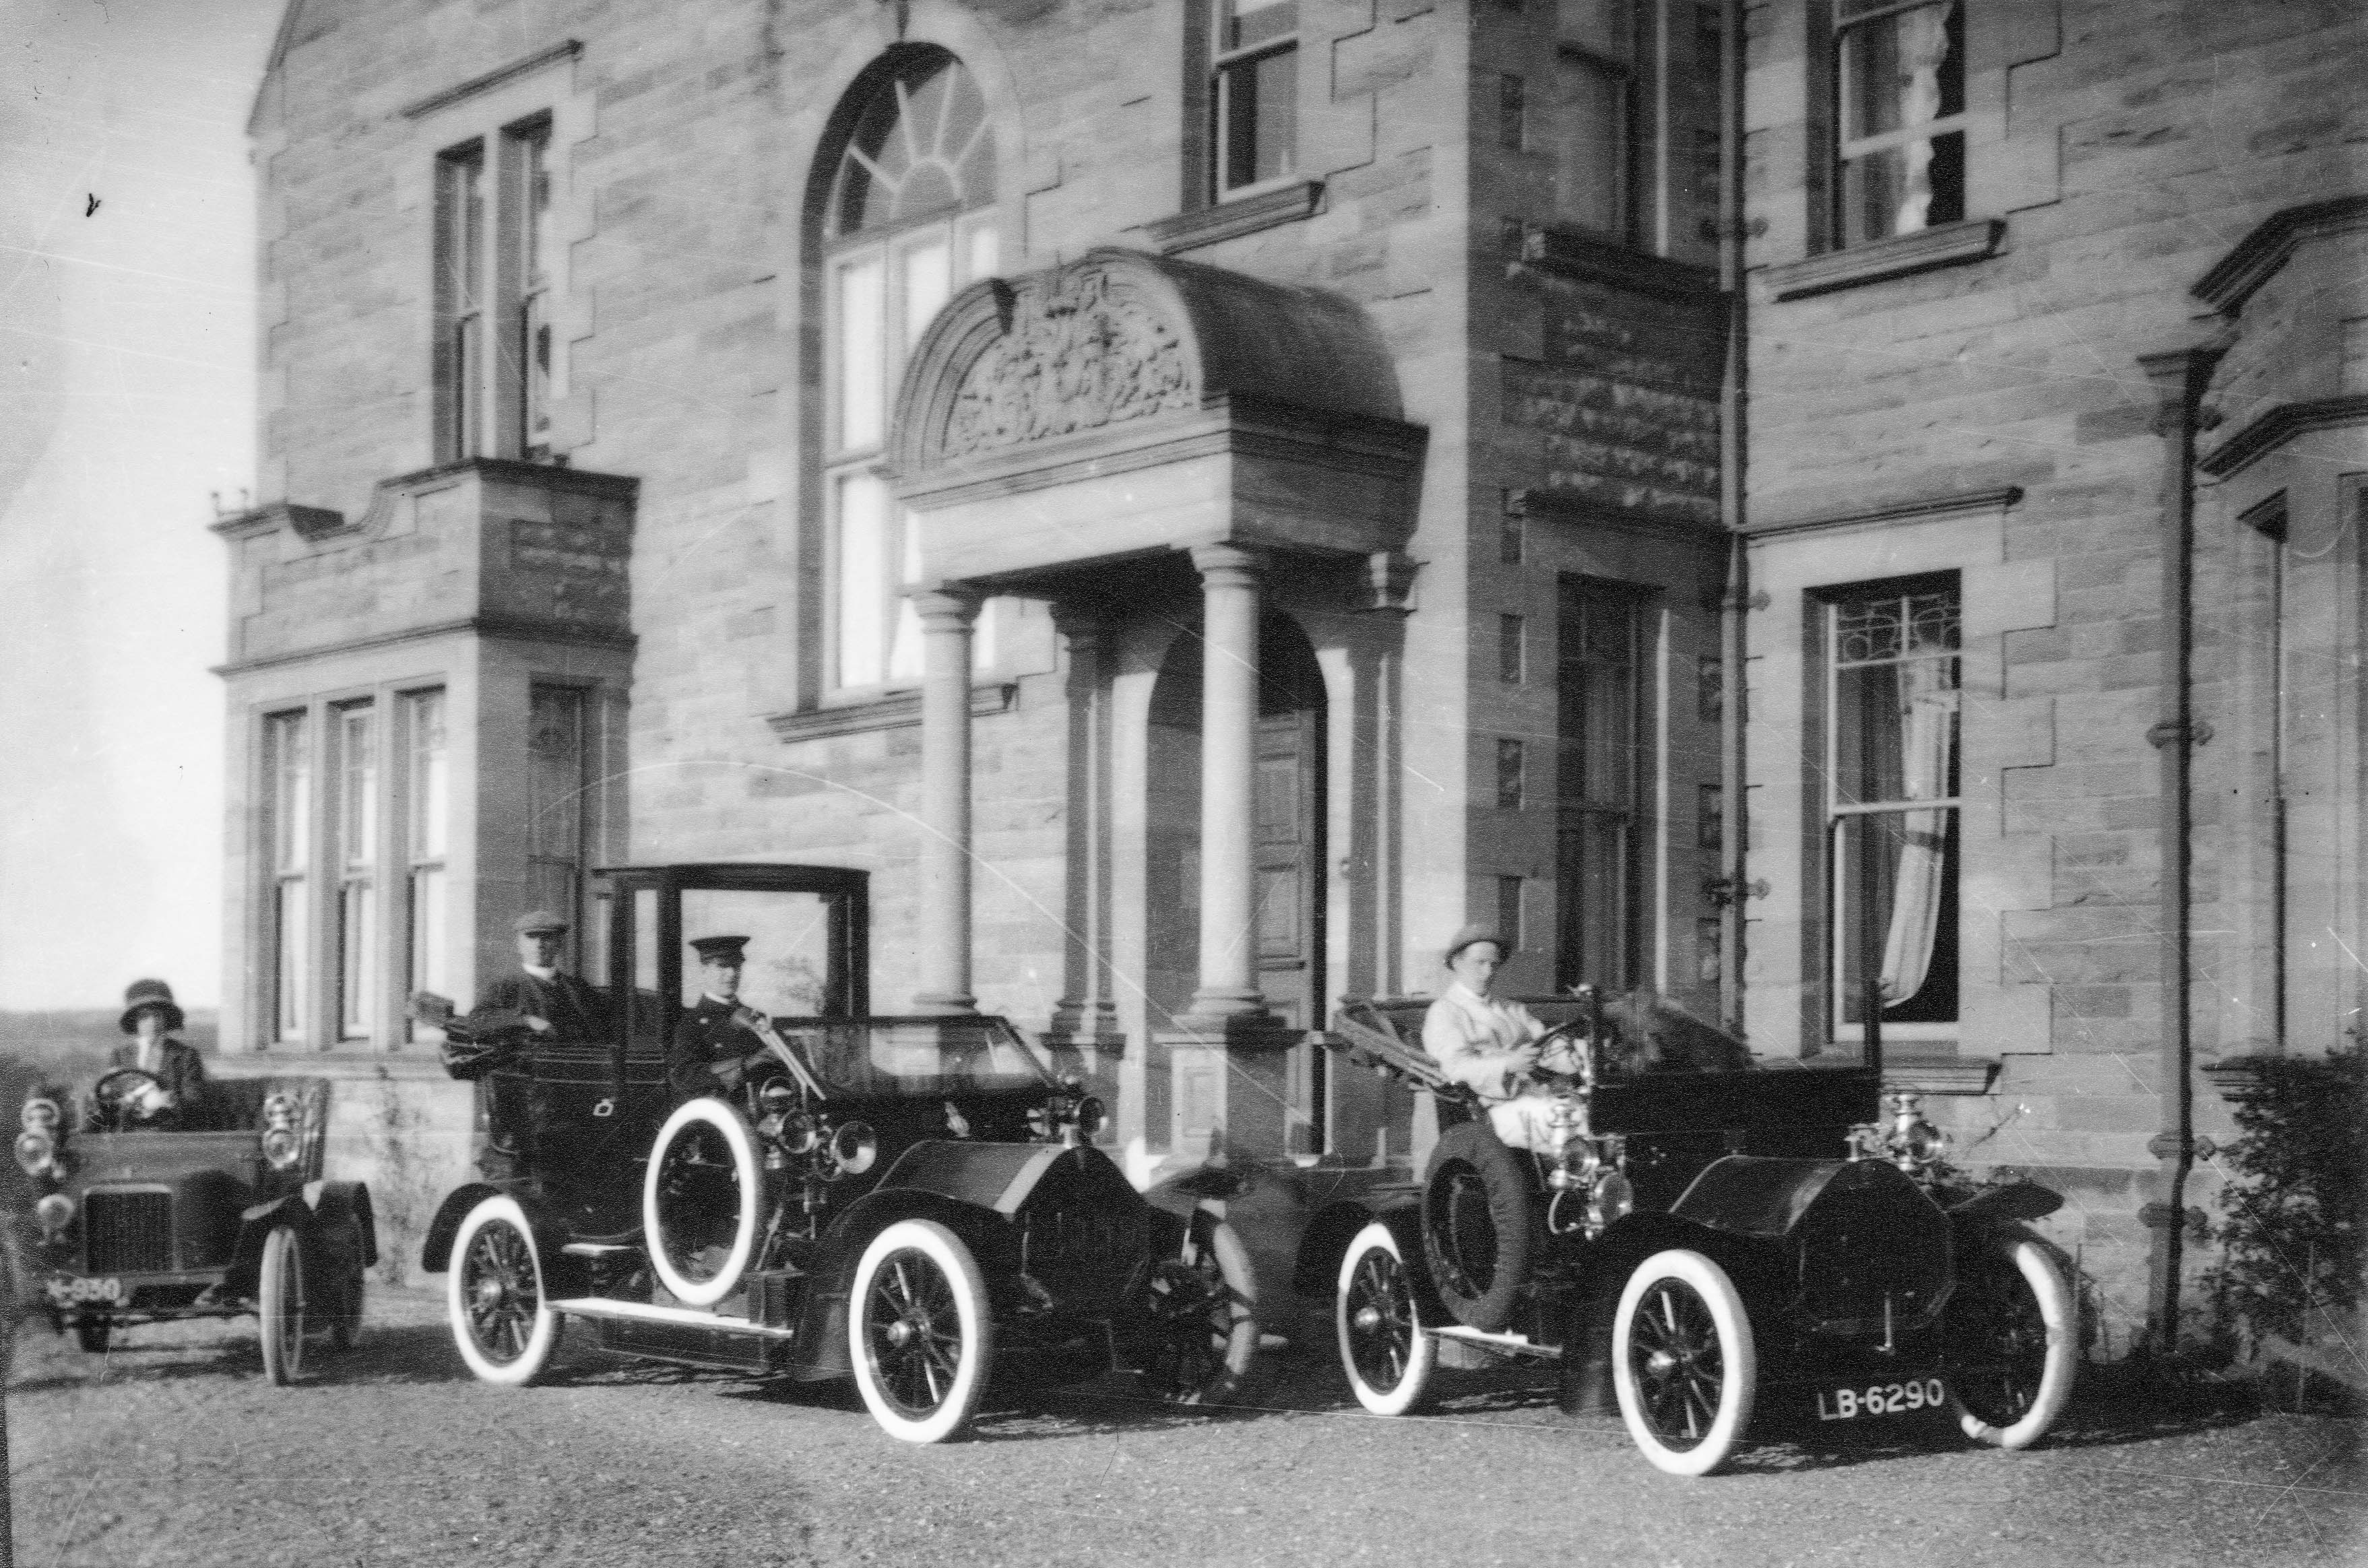 Charles Percy Esq,. My great grand father. Alnwick Solicitor and Coroner for North Northumberland. Estate Solicitor to the Duke of Northumberland. Seen here outside his house Hillcrest, Alnwick with his son, daughter and the chauffeur